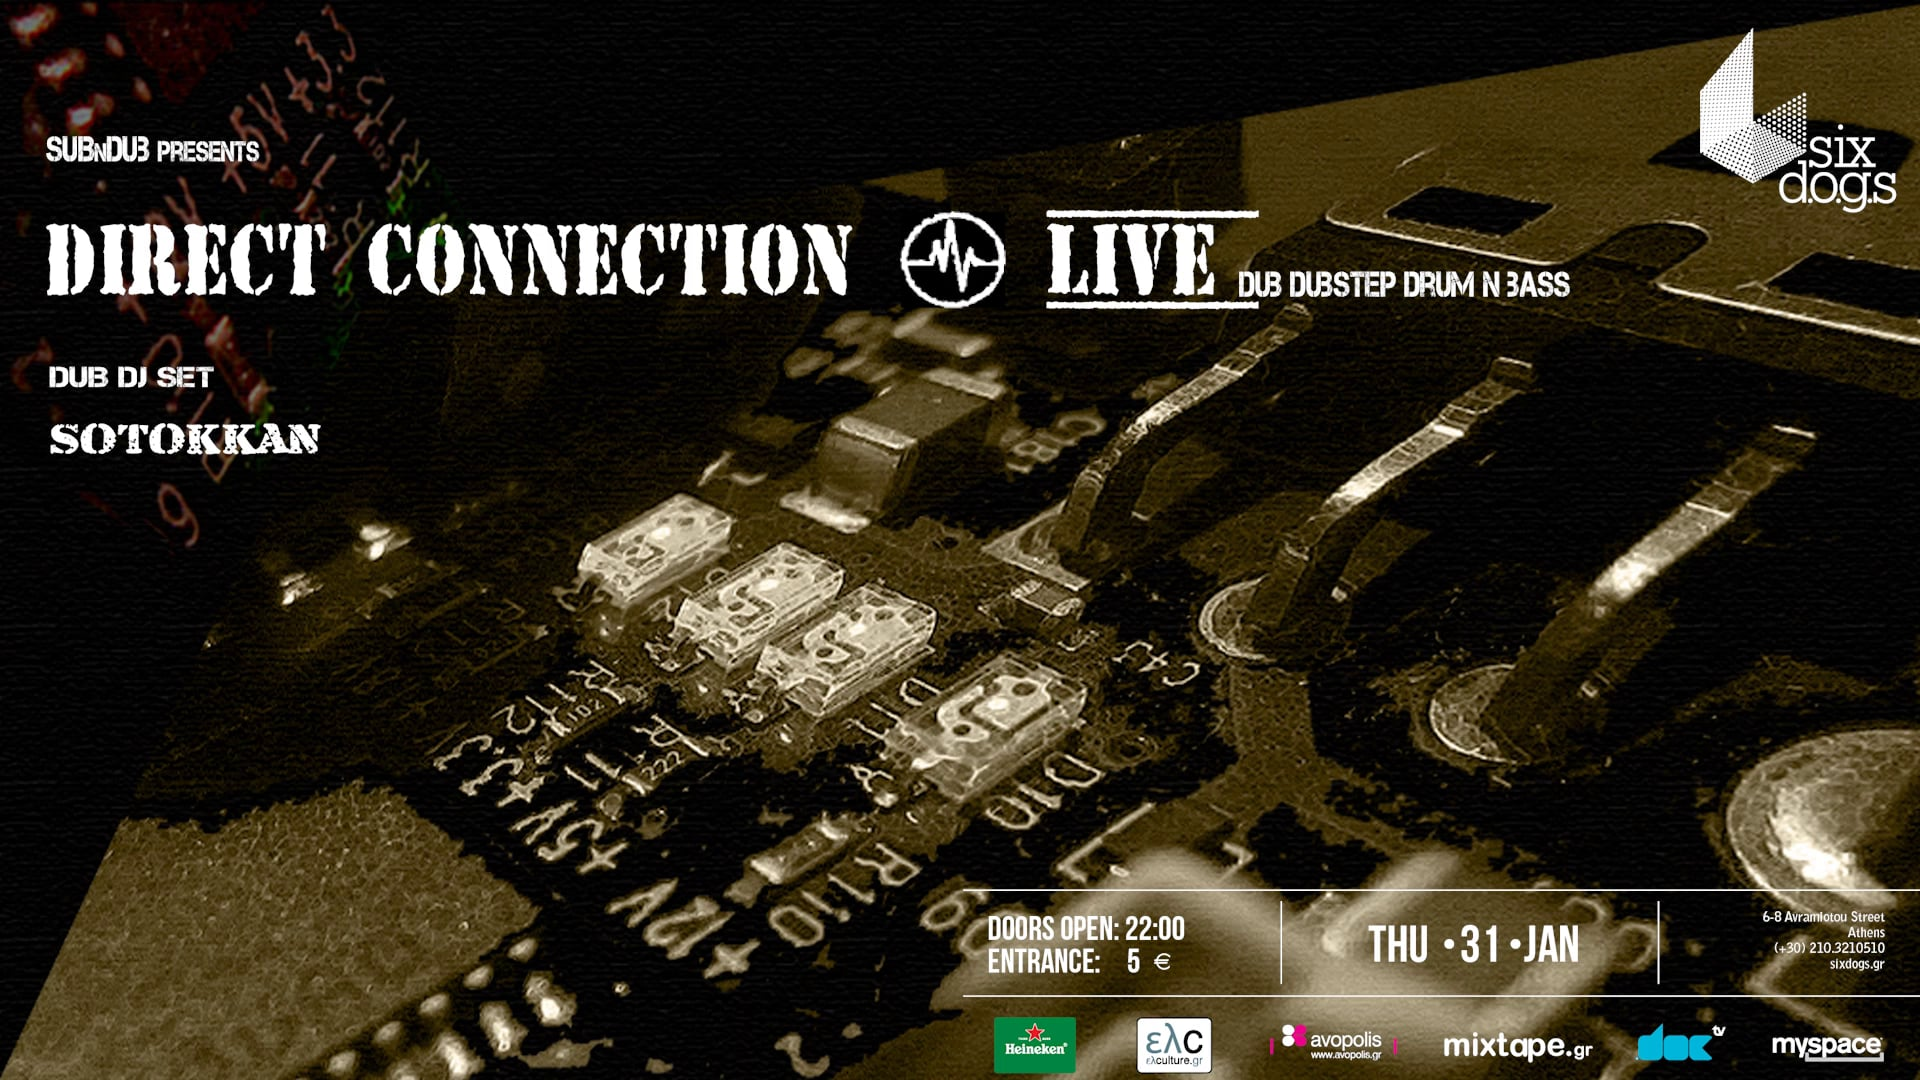 Direct Connection Live. Promo Video